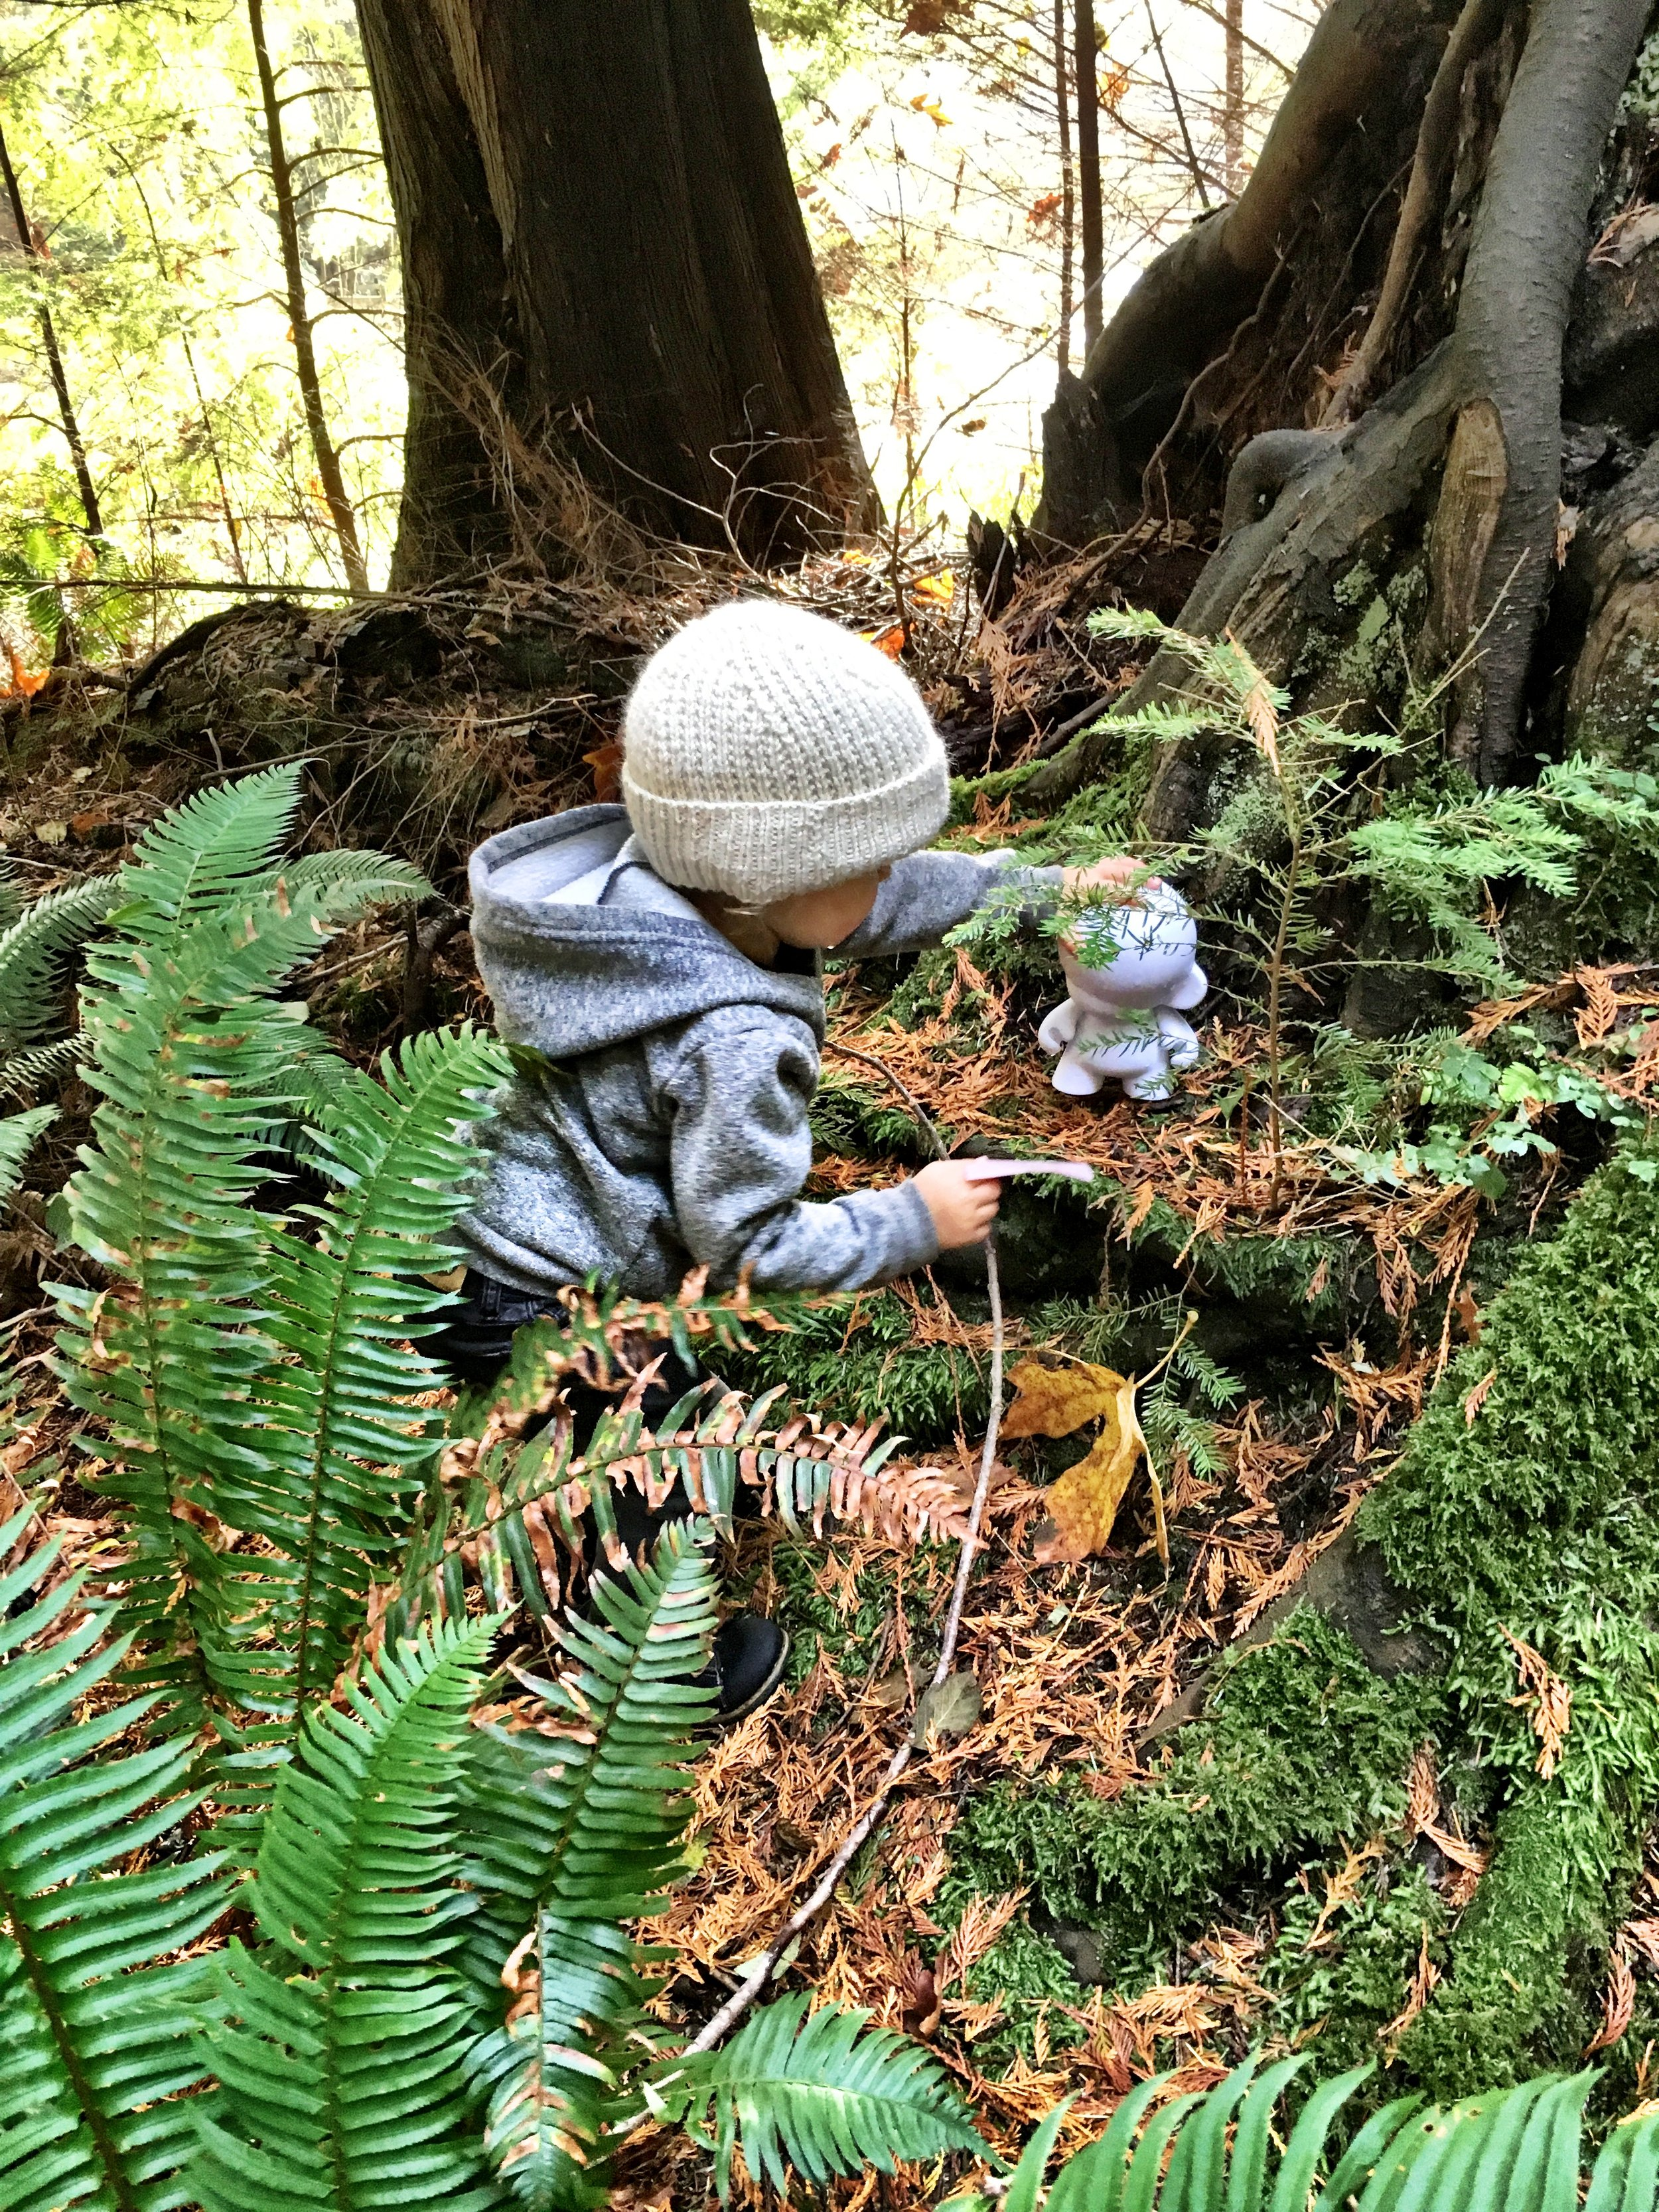 Hidden treasures with secret messages were found throughout the forest that even the youngest wanted to wander quietly in the woods.